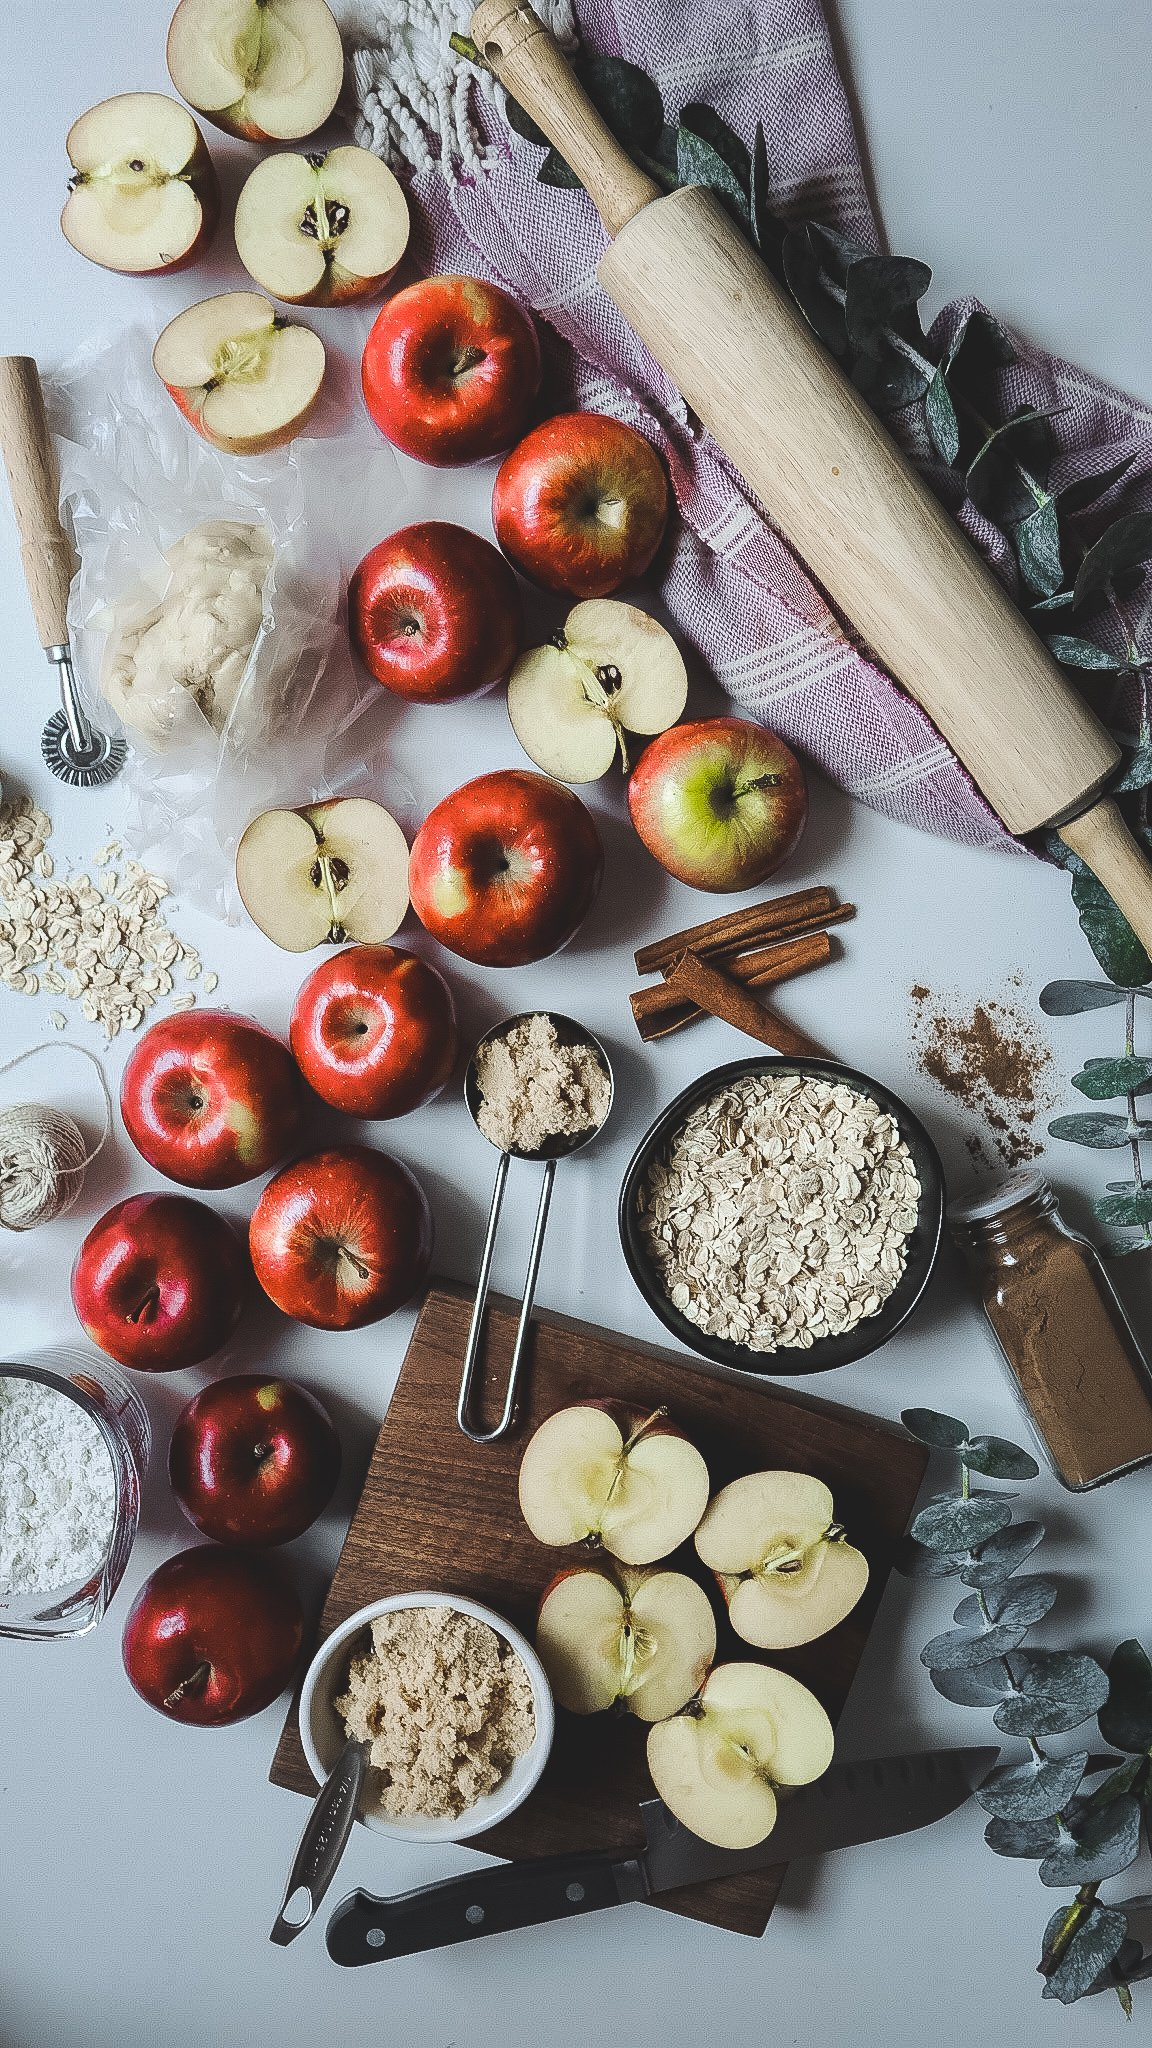 red apples, baking ingredients , a rolling bin and oats all styled on a counter top